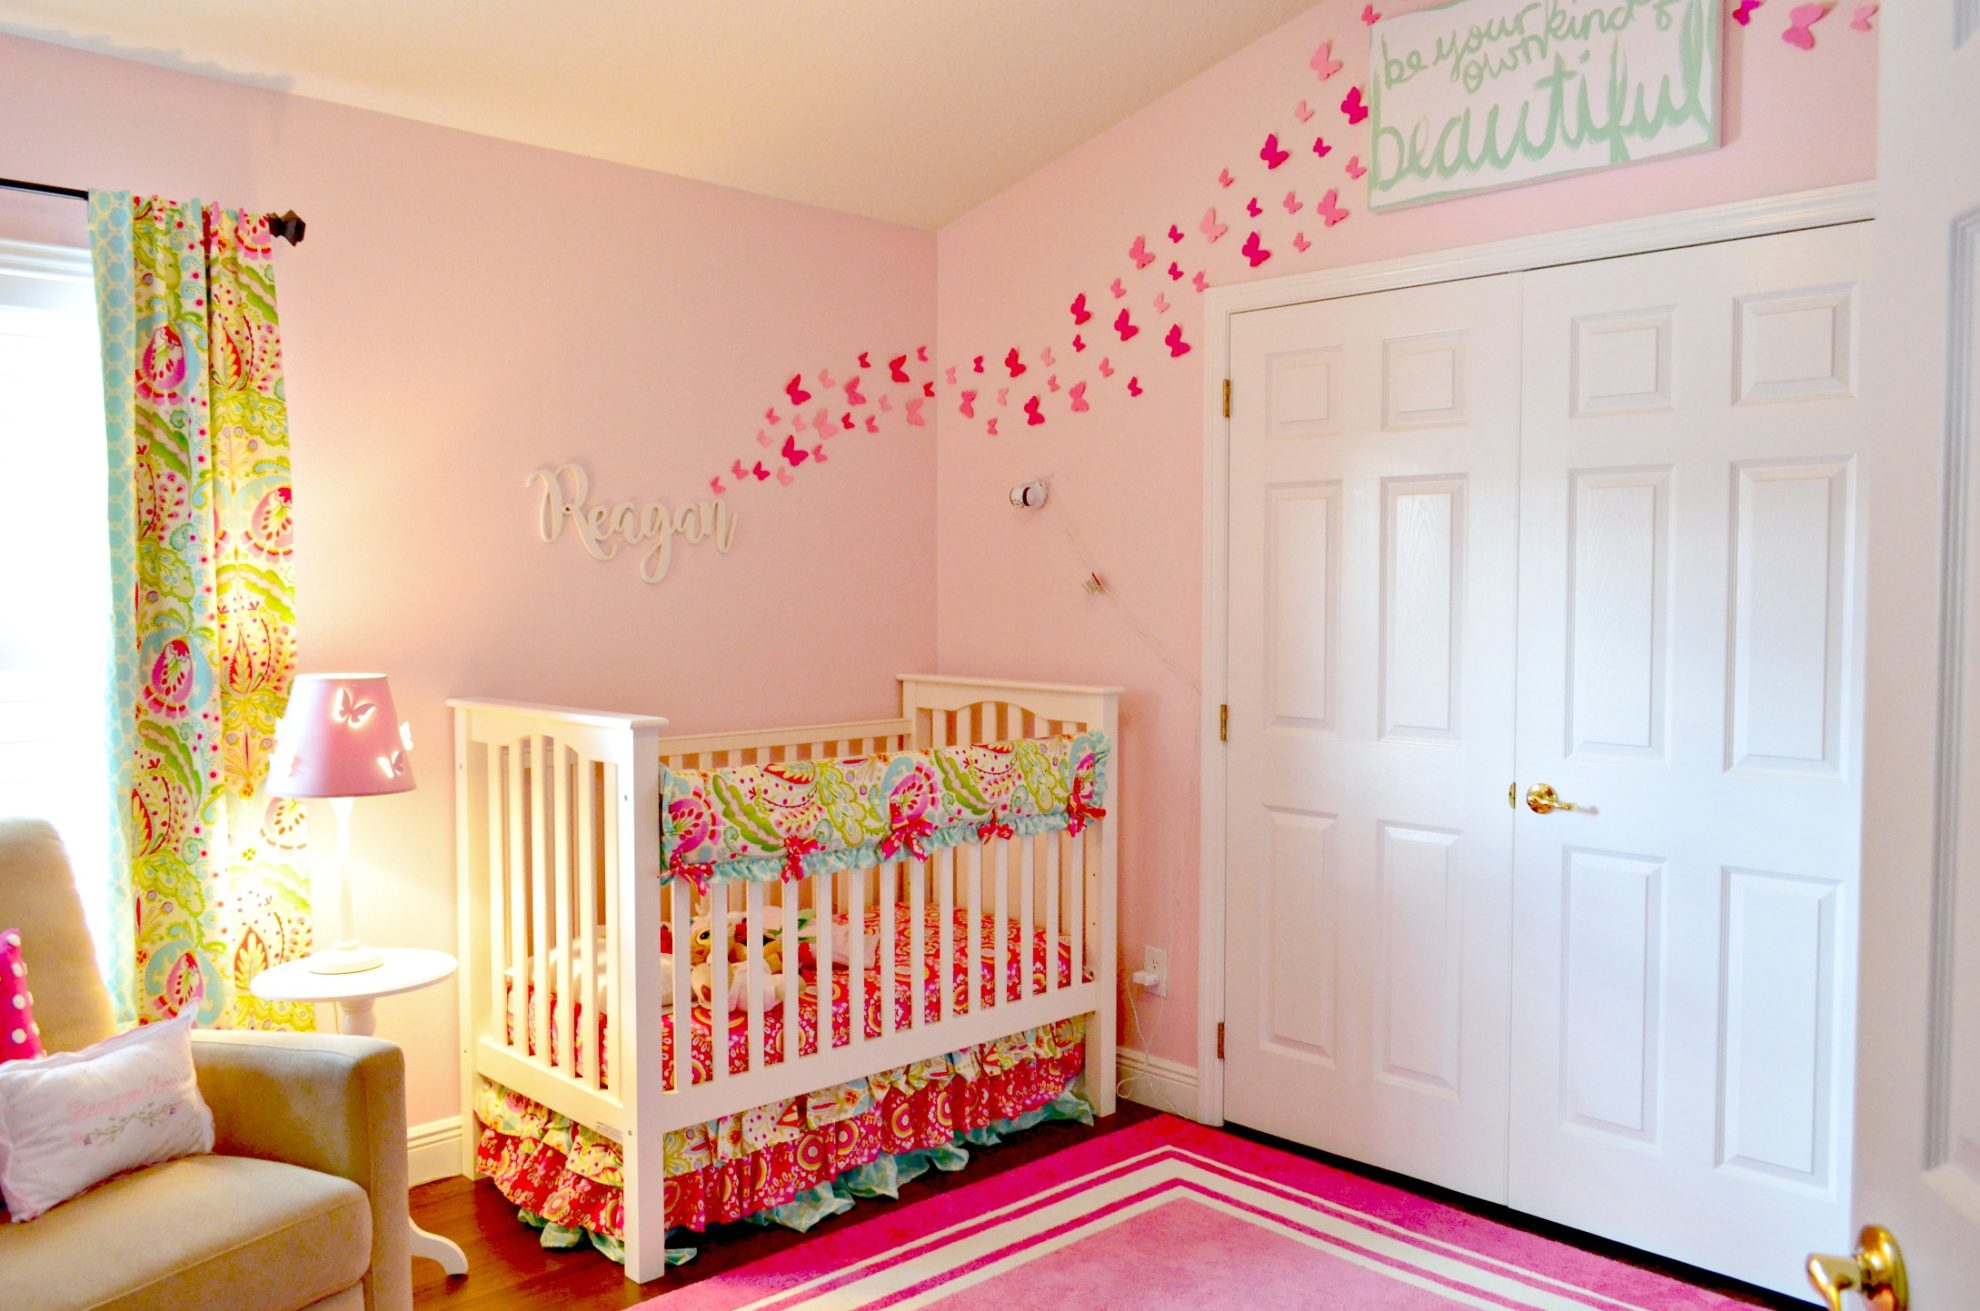 Create a Paper Butterfly Wall in Nursery